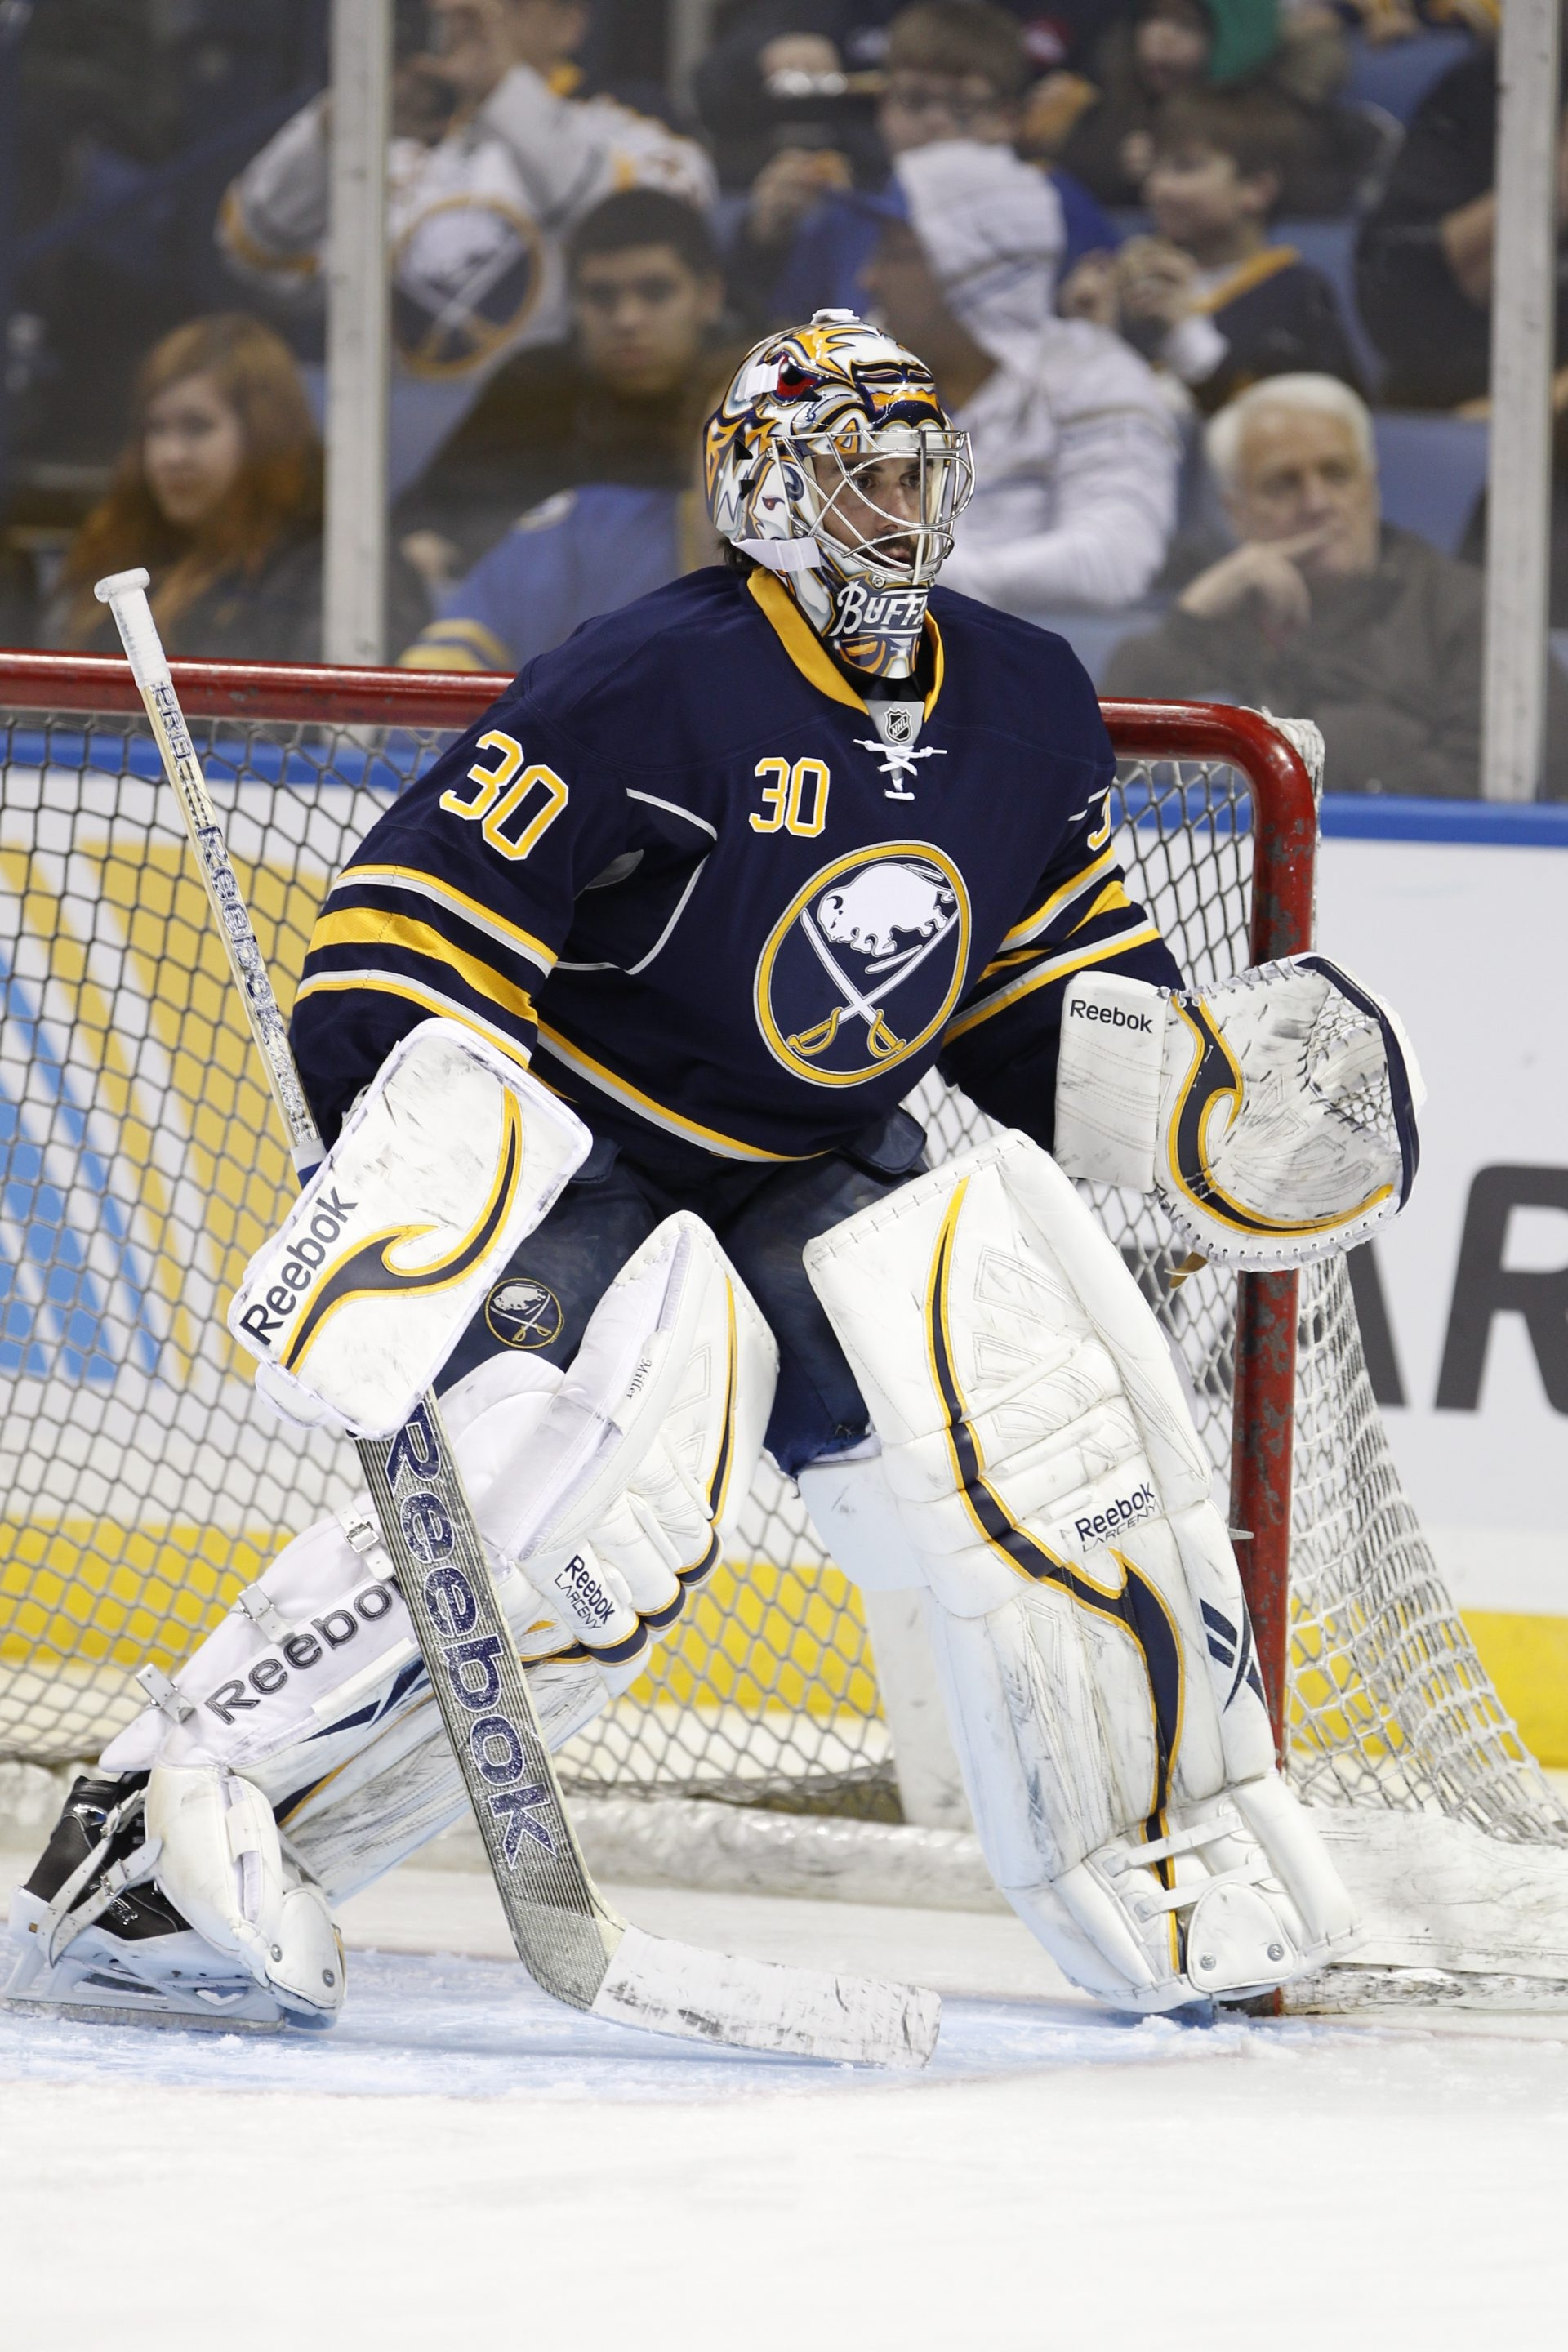 Goaltender Ryan Miller and the Sabres have kept themselves in the playoff chase even after the trading of three veterans.   { to go with SPORTS   STORY}  Buffalo Sabre, Ryan Miller,(30),  at the First Niagara Center ,on Monday, Jan. 14, 2013.  {Photo by Harry Scull Jr. / Buffalo News}